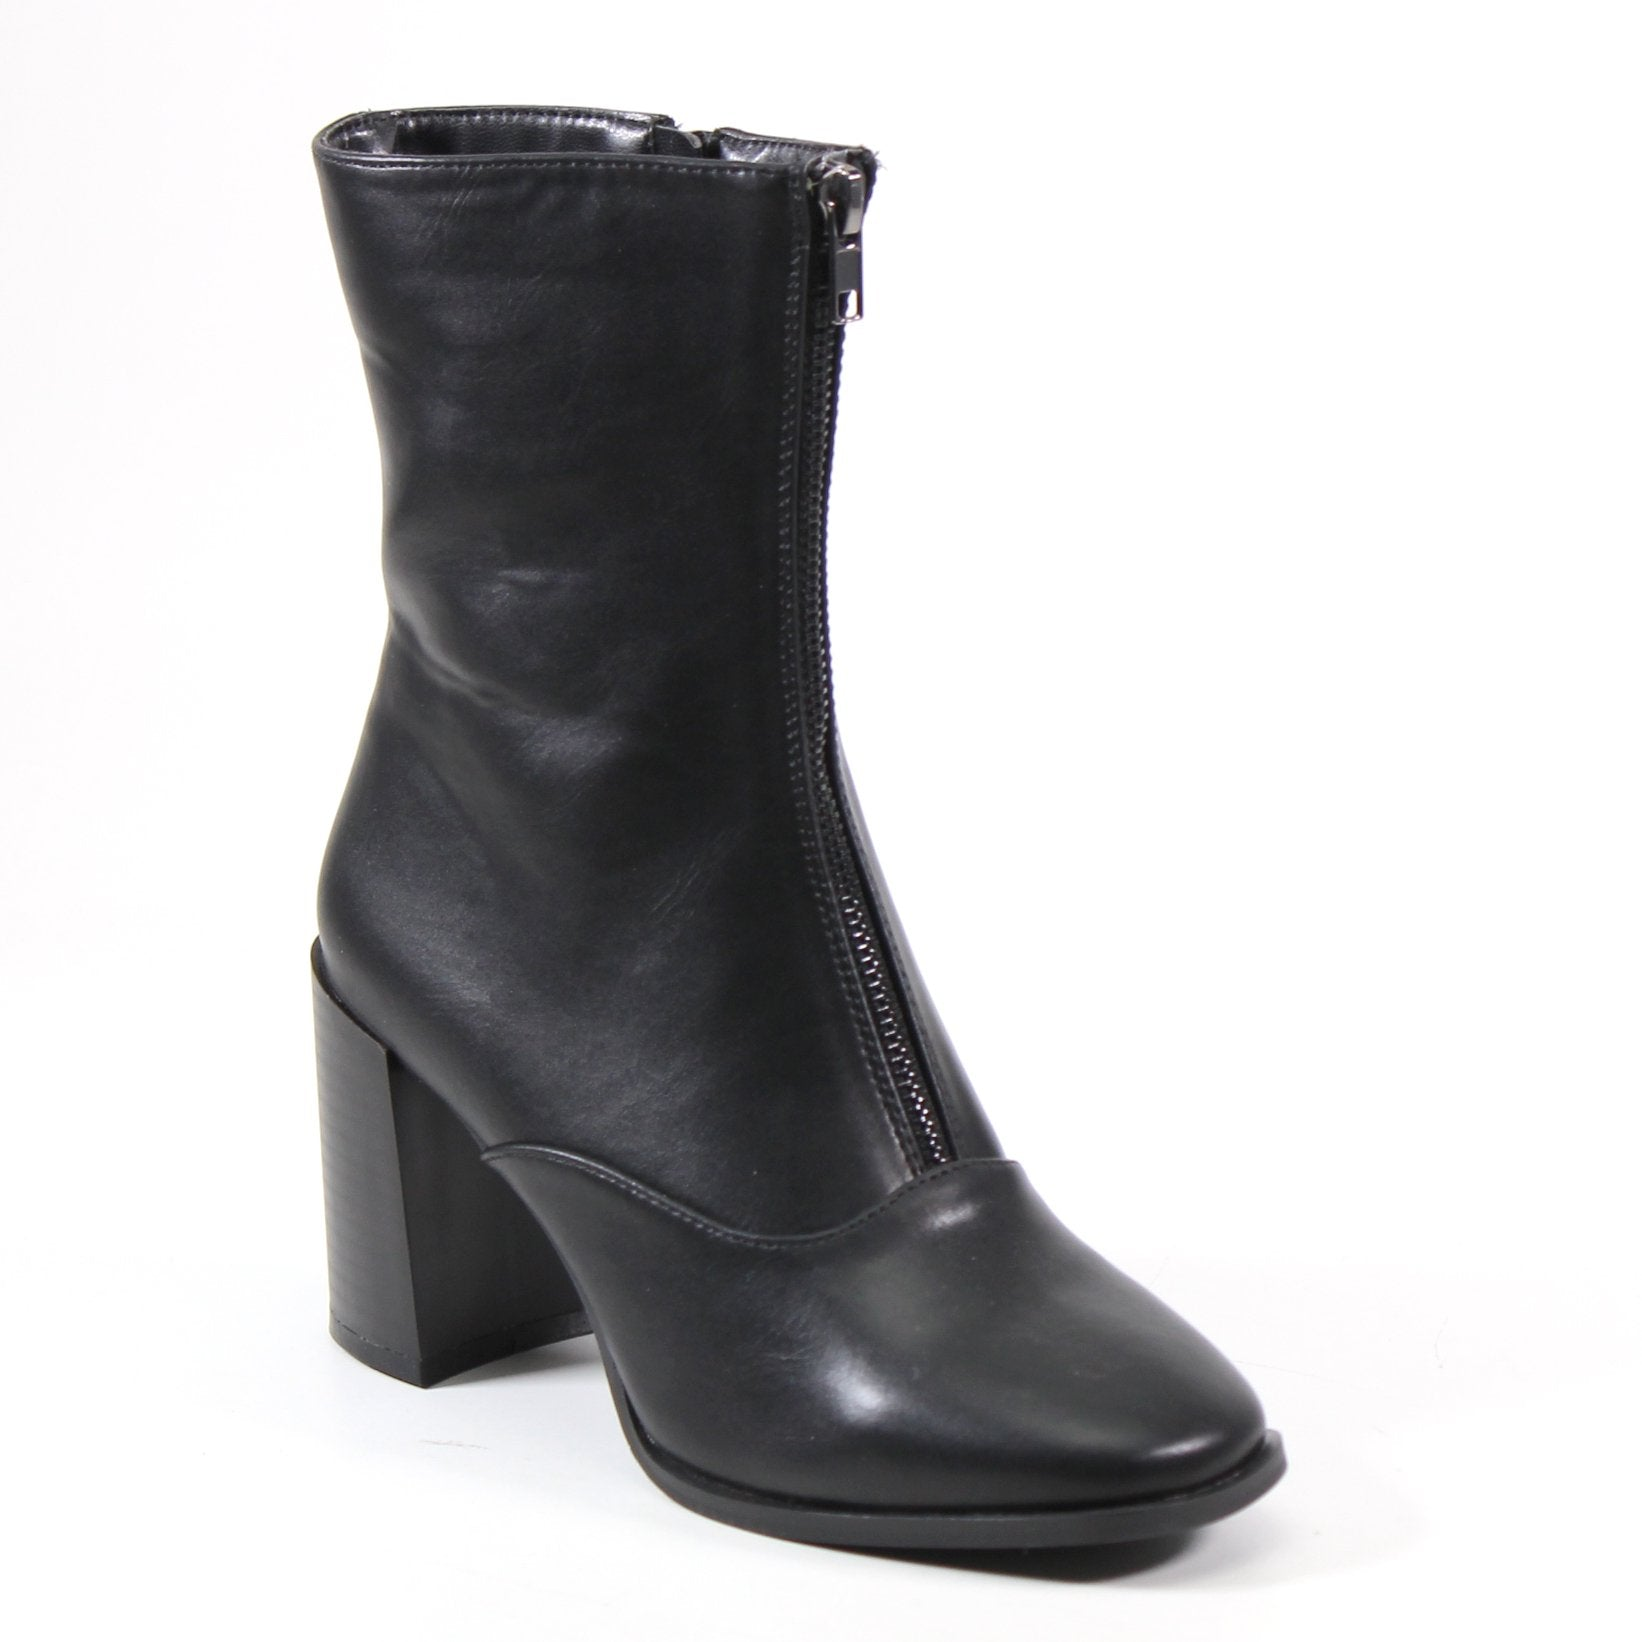 This stylish vegan leather mid-calf bootie features an ornamental stunning frontal zip that demands attention each step of the way. A functional side zip entry and rounded snip toe complement the block heel. Exhibit a classic sleek aesthetic with your new